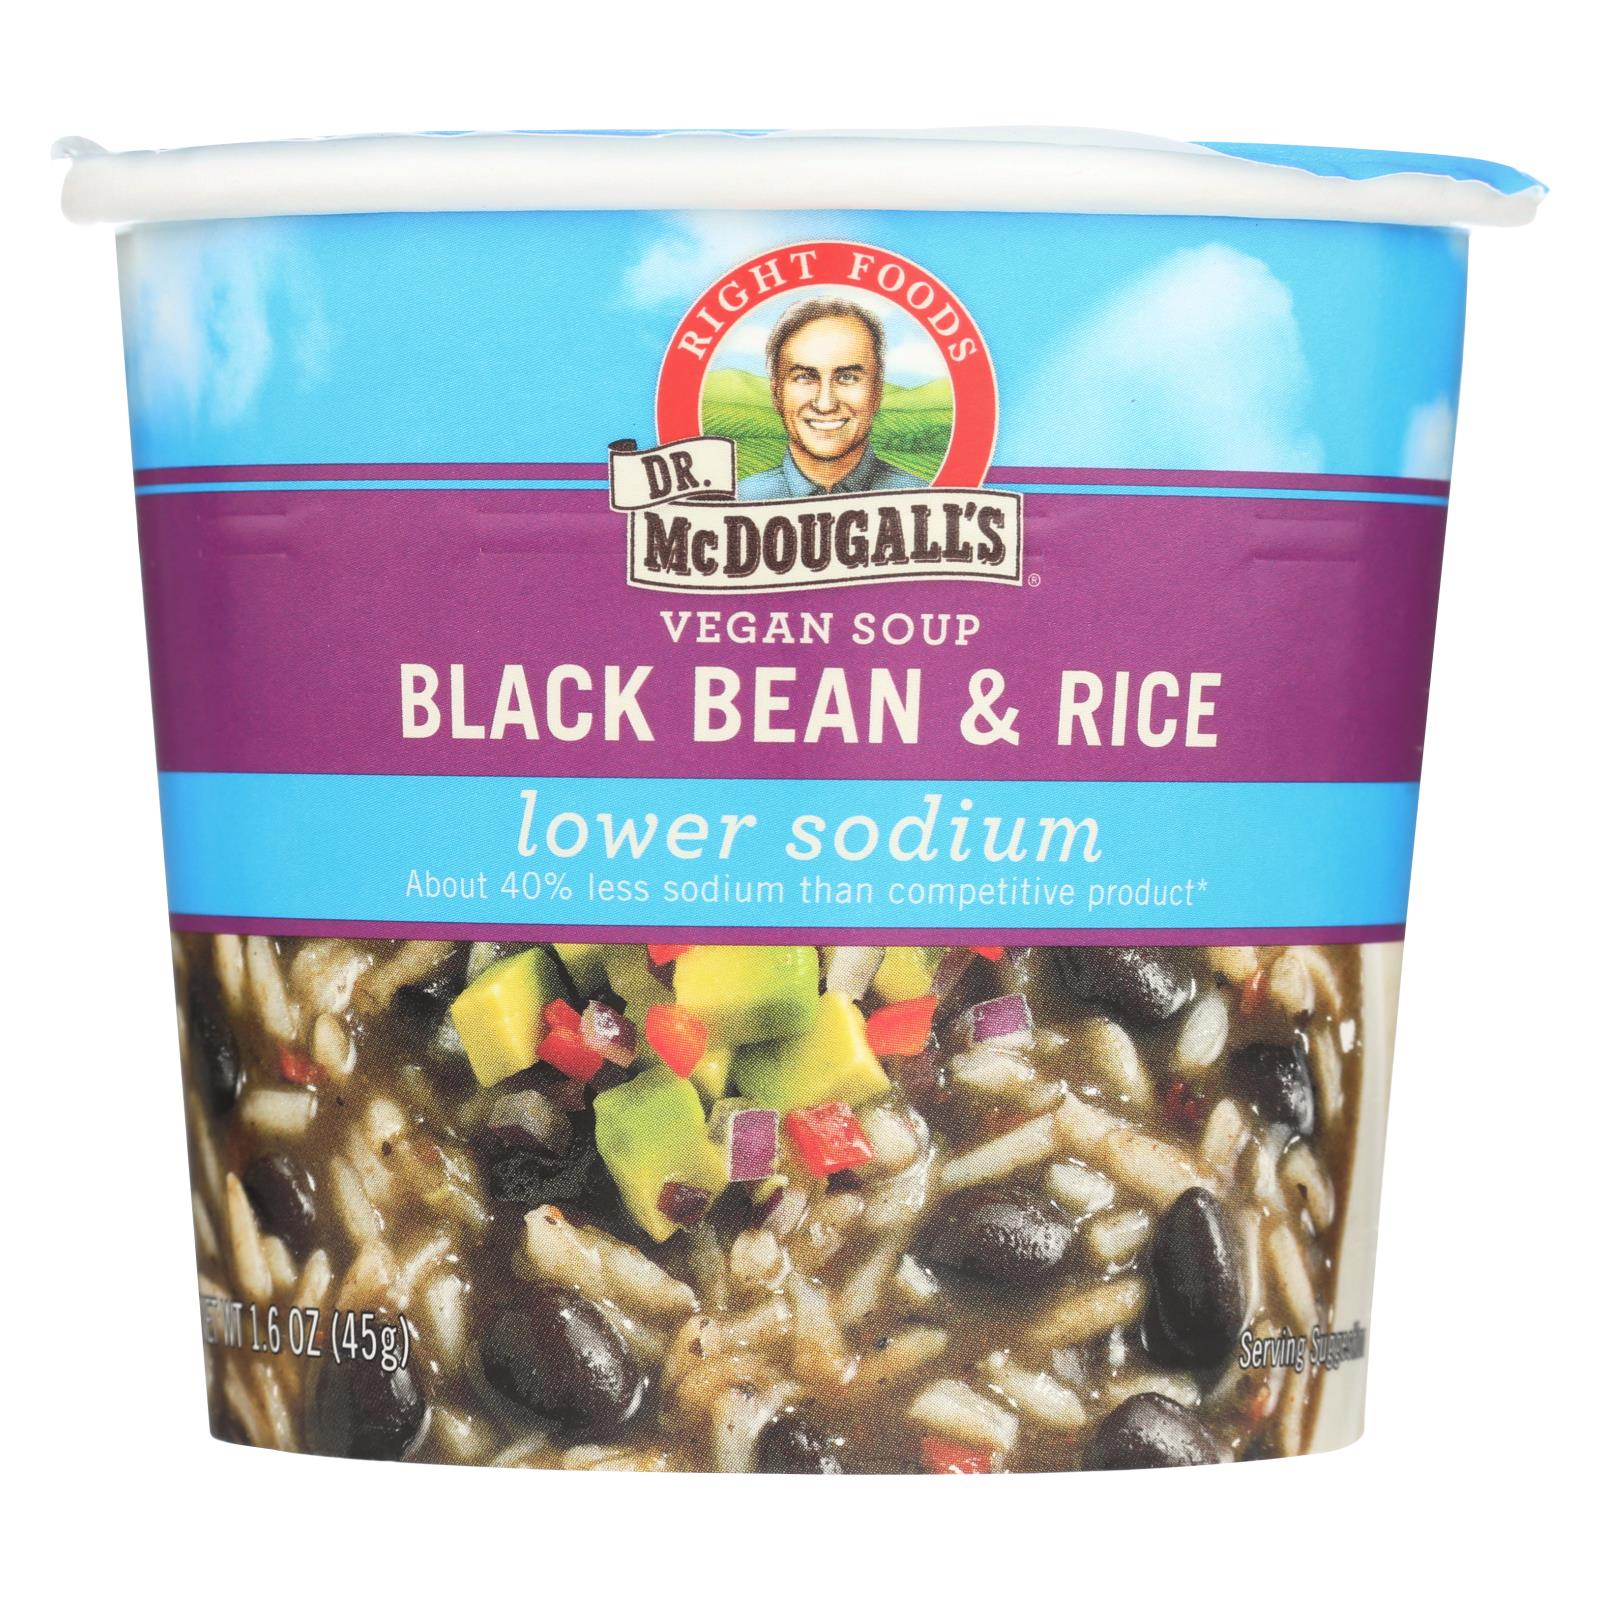 Dr. Mcdougall's Vegan Black Bean And Rice Lower Sodium Soup Cup - Case Of 6 - 1.6 Oz. HG0660704